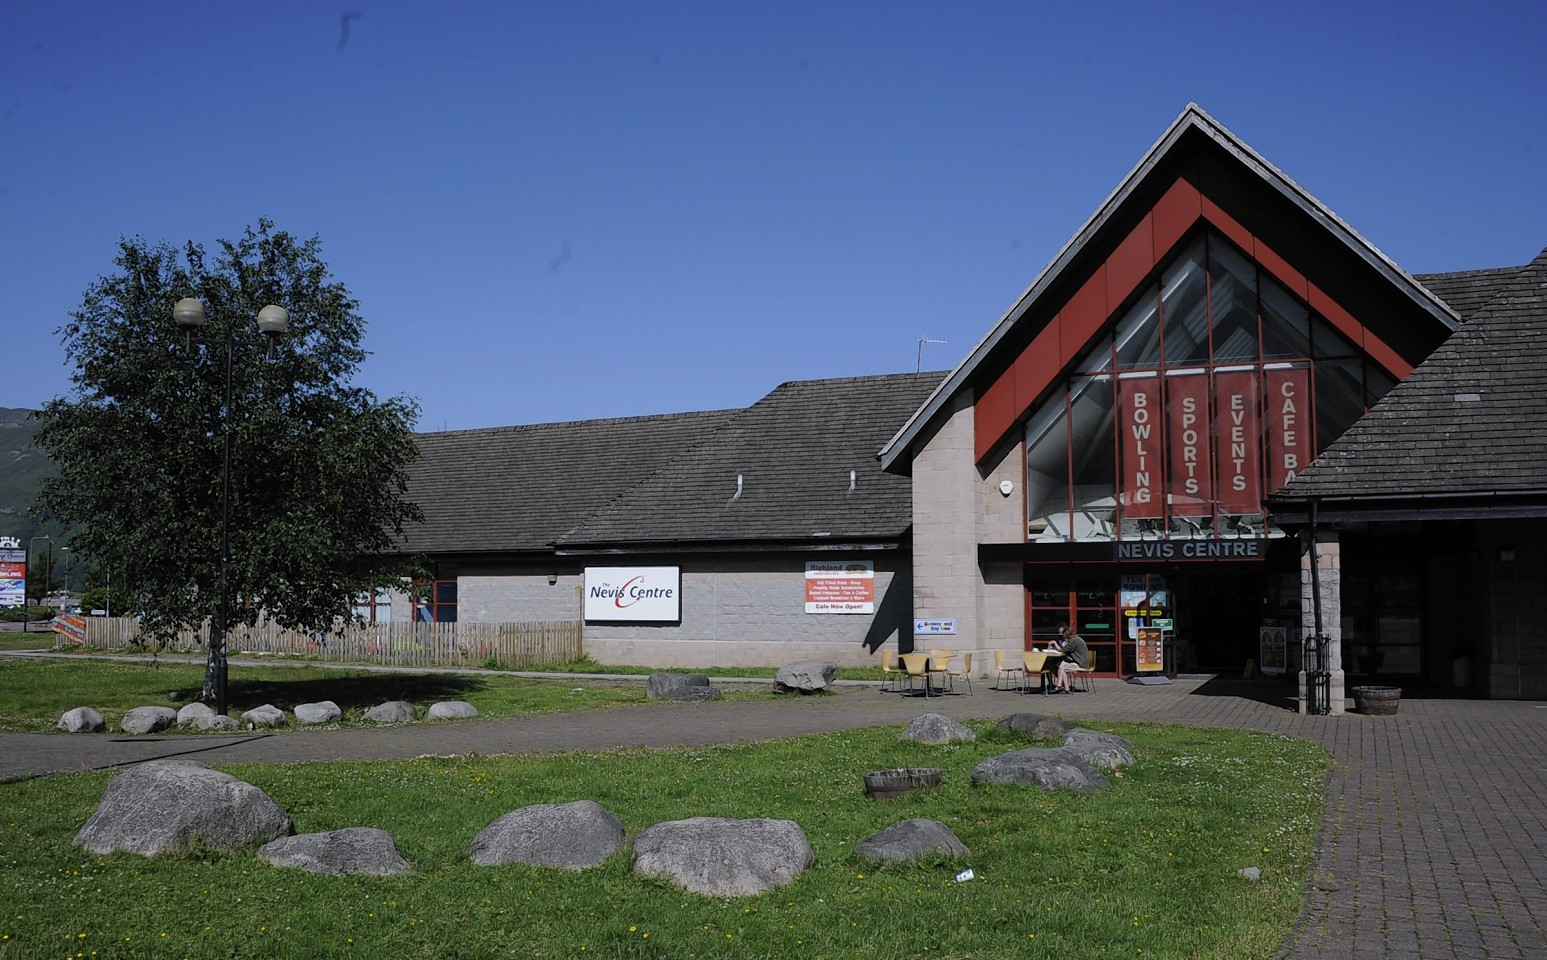 Fort Con is to be held at the Nevis Centre and other venues in the Fort William area